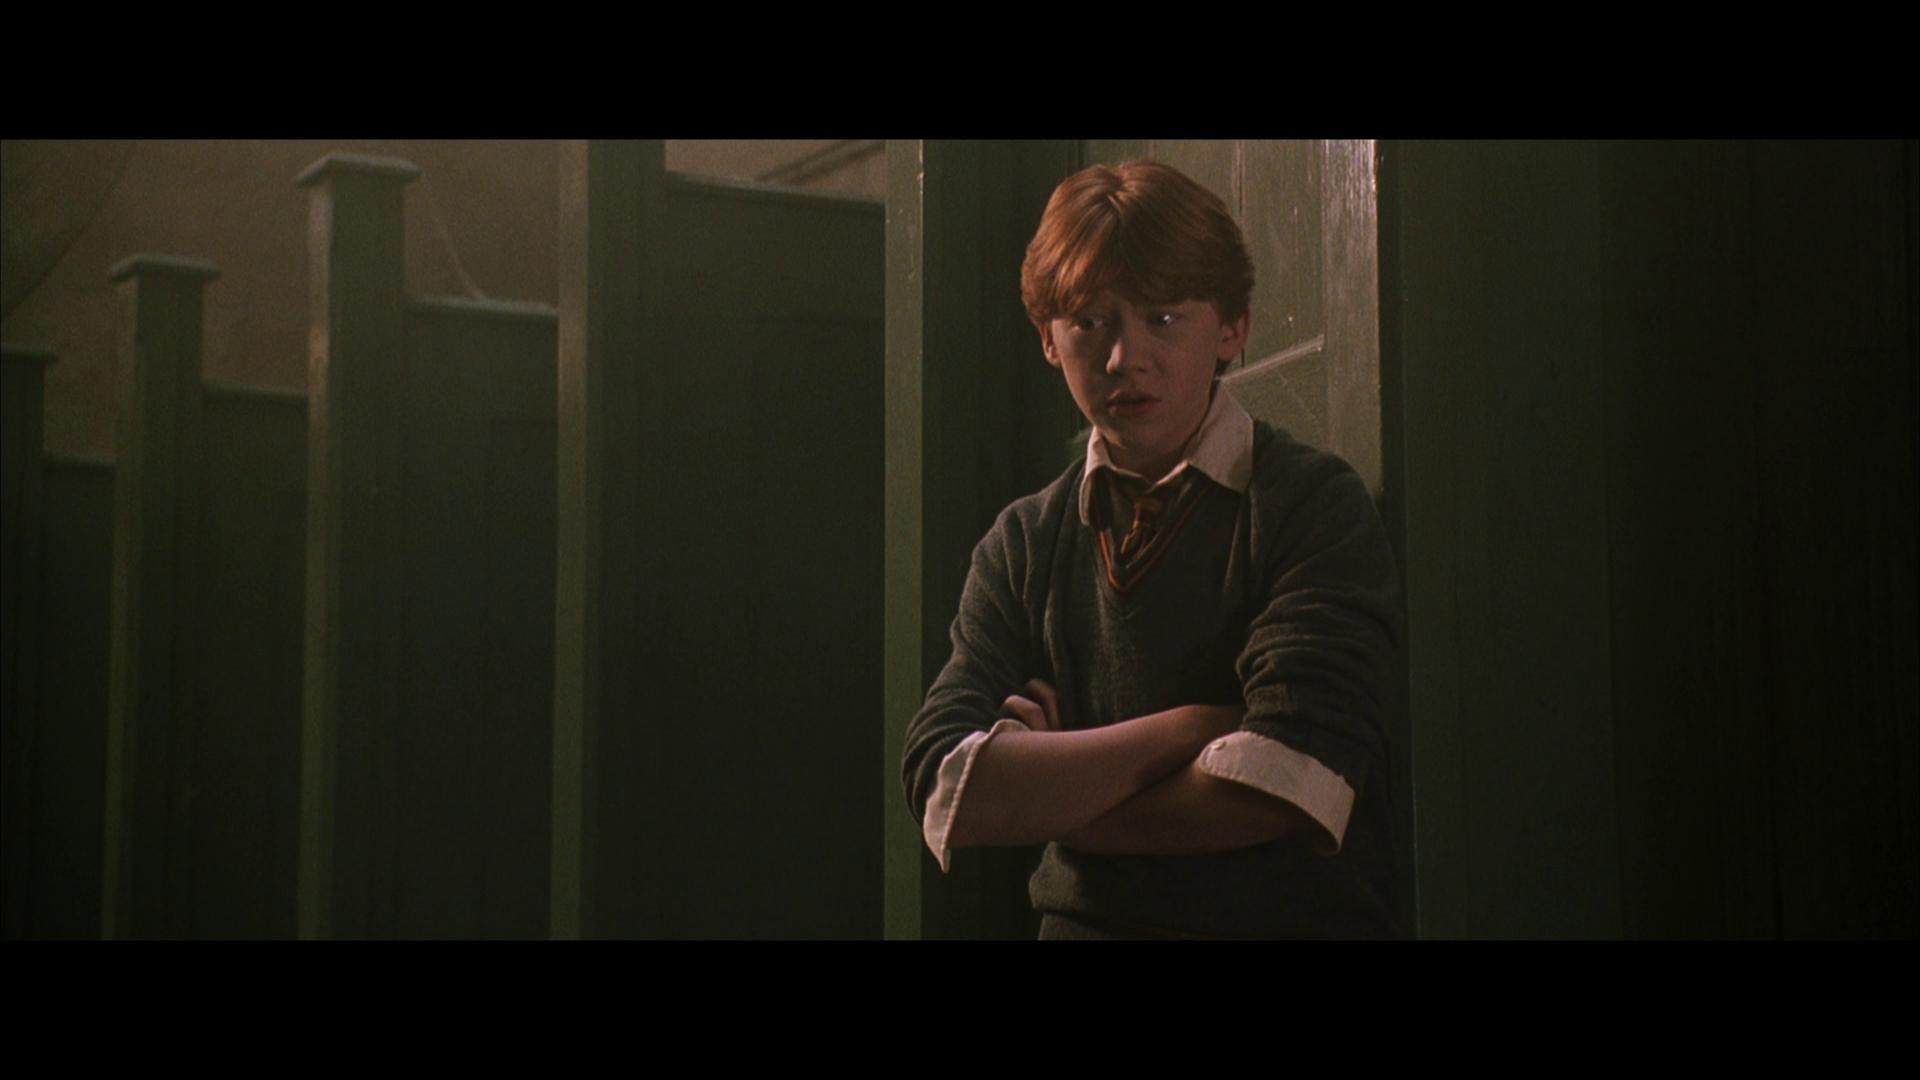 Harry Potter: 8-Film Collection - 4K UHD Review - Page 3 of